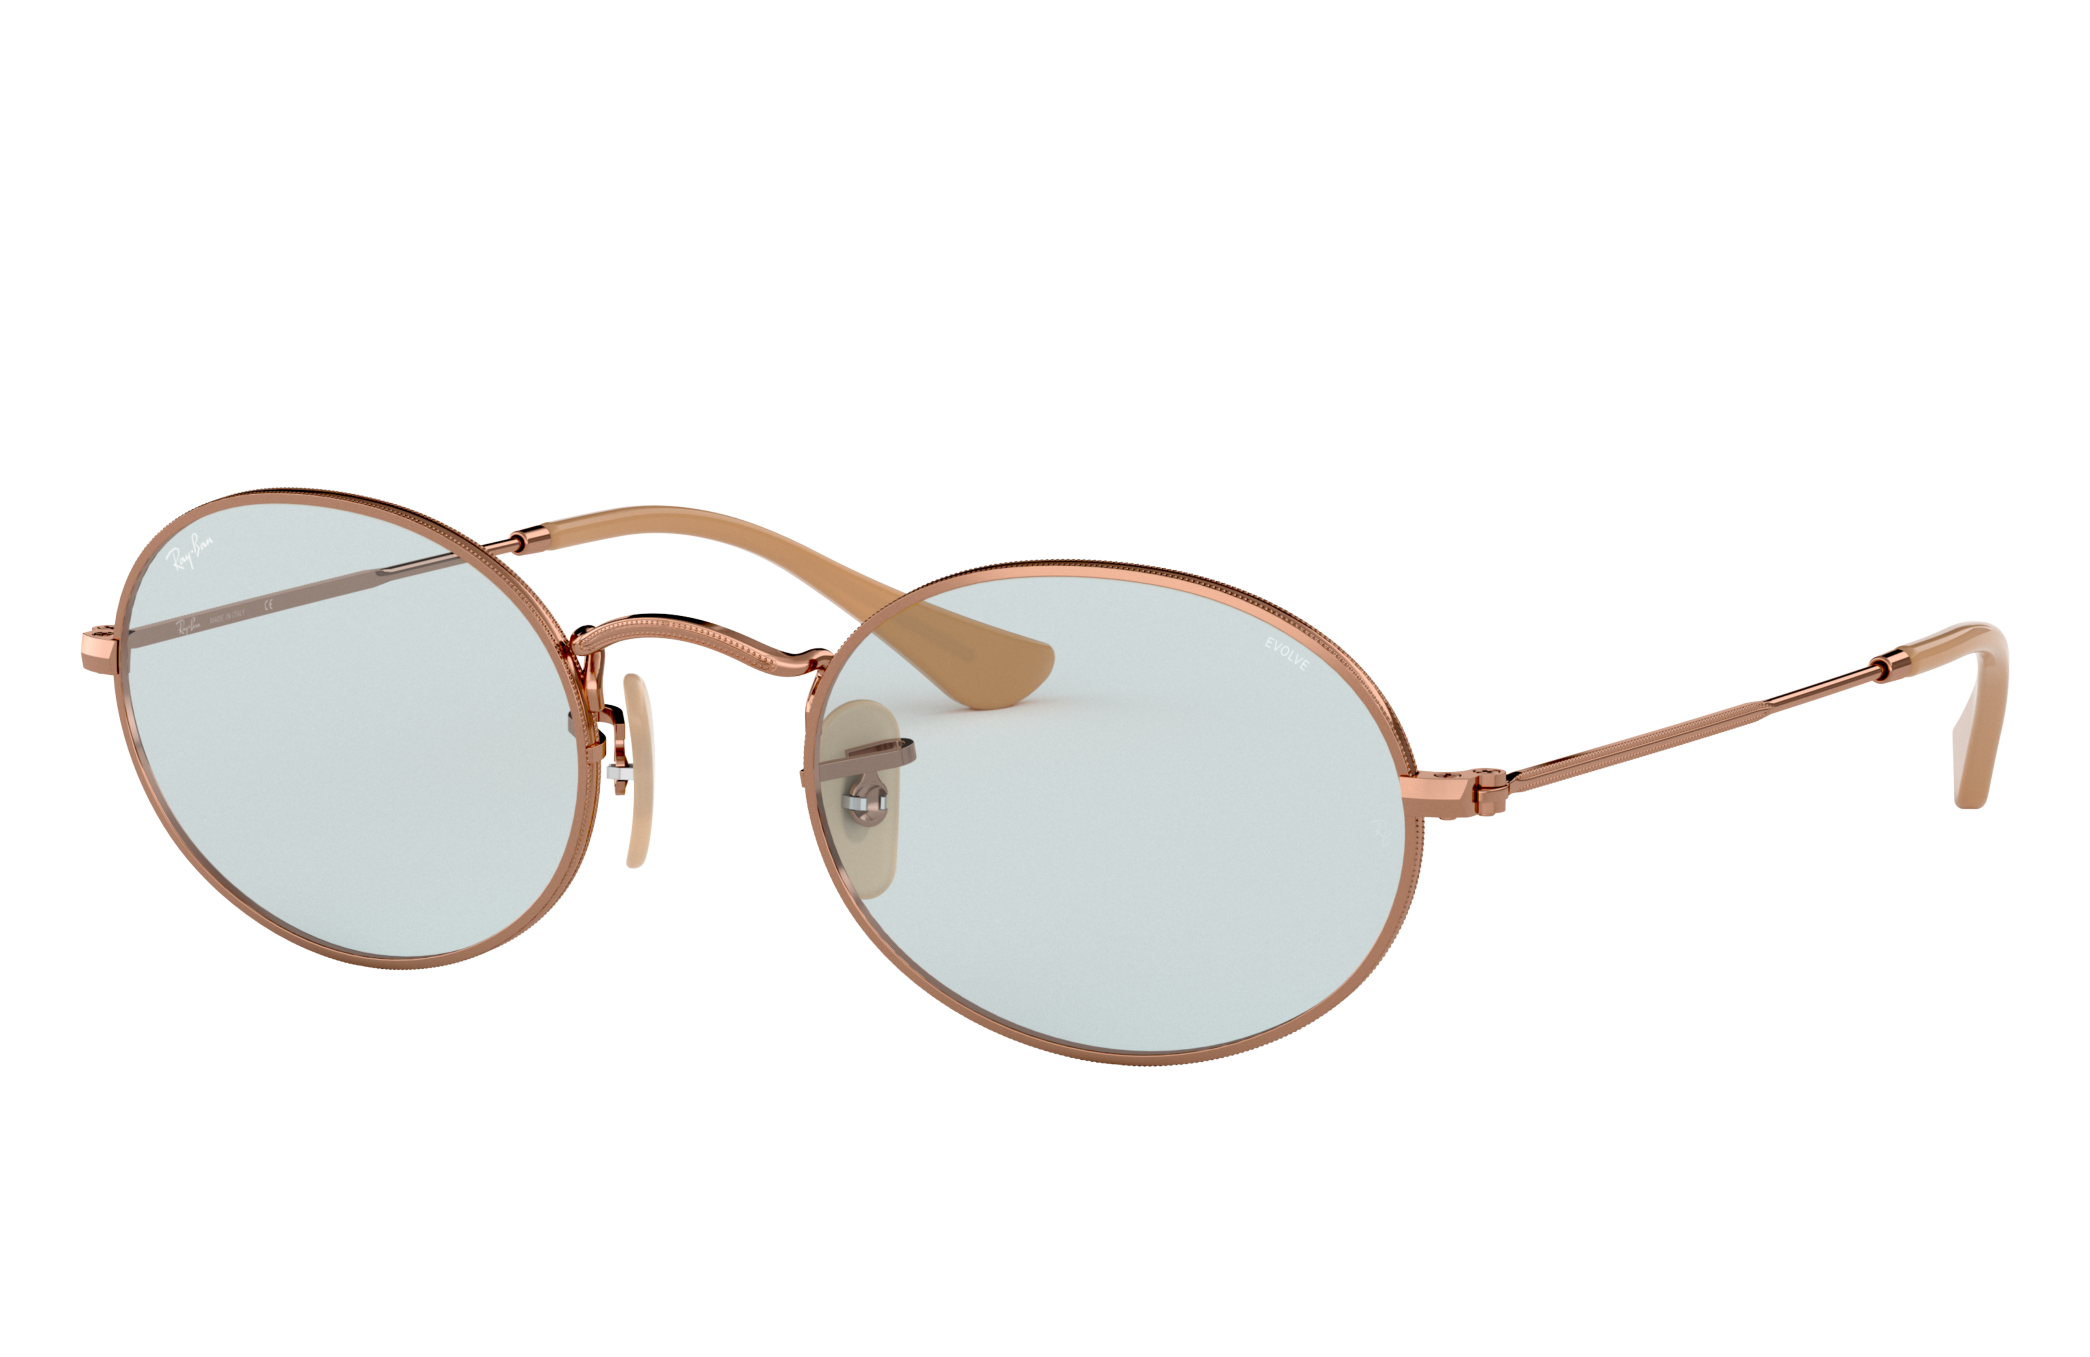 Ray-Ban Oval Washed Evolve Bronze-Copper, Blue Lenses - RB3547N